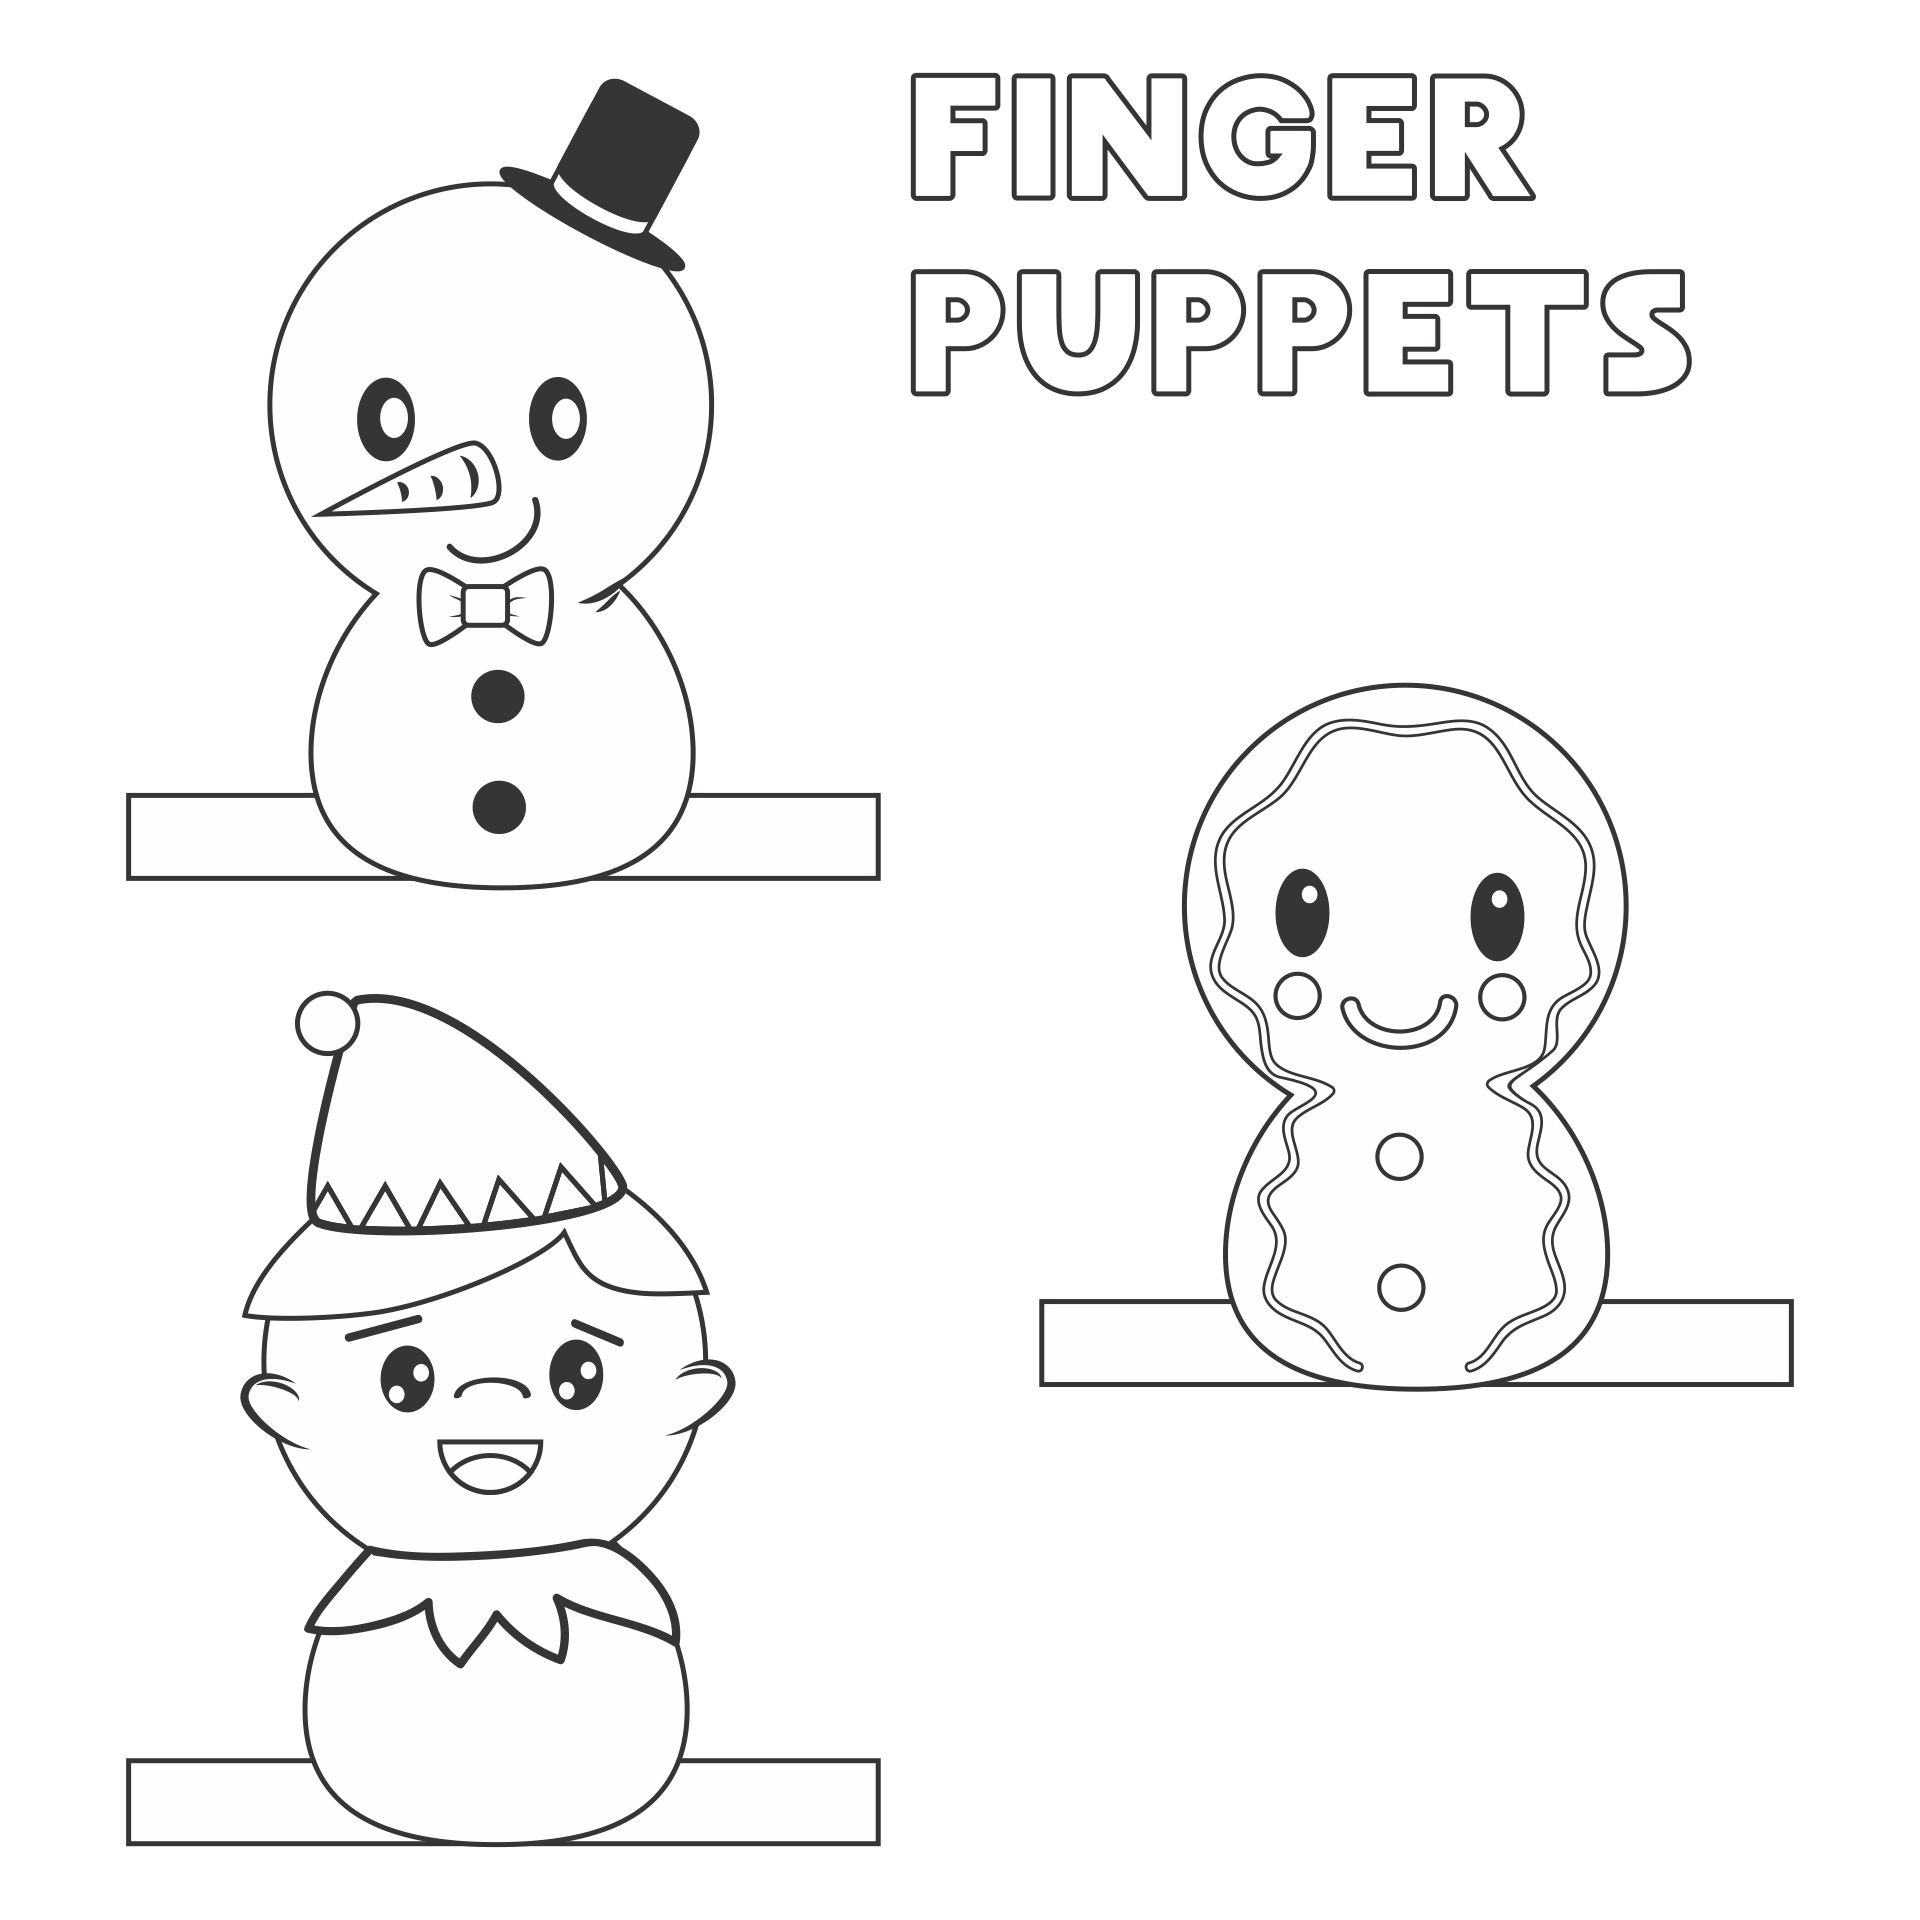 5 Images of Fun Christmas Crafts Printable